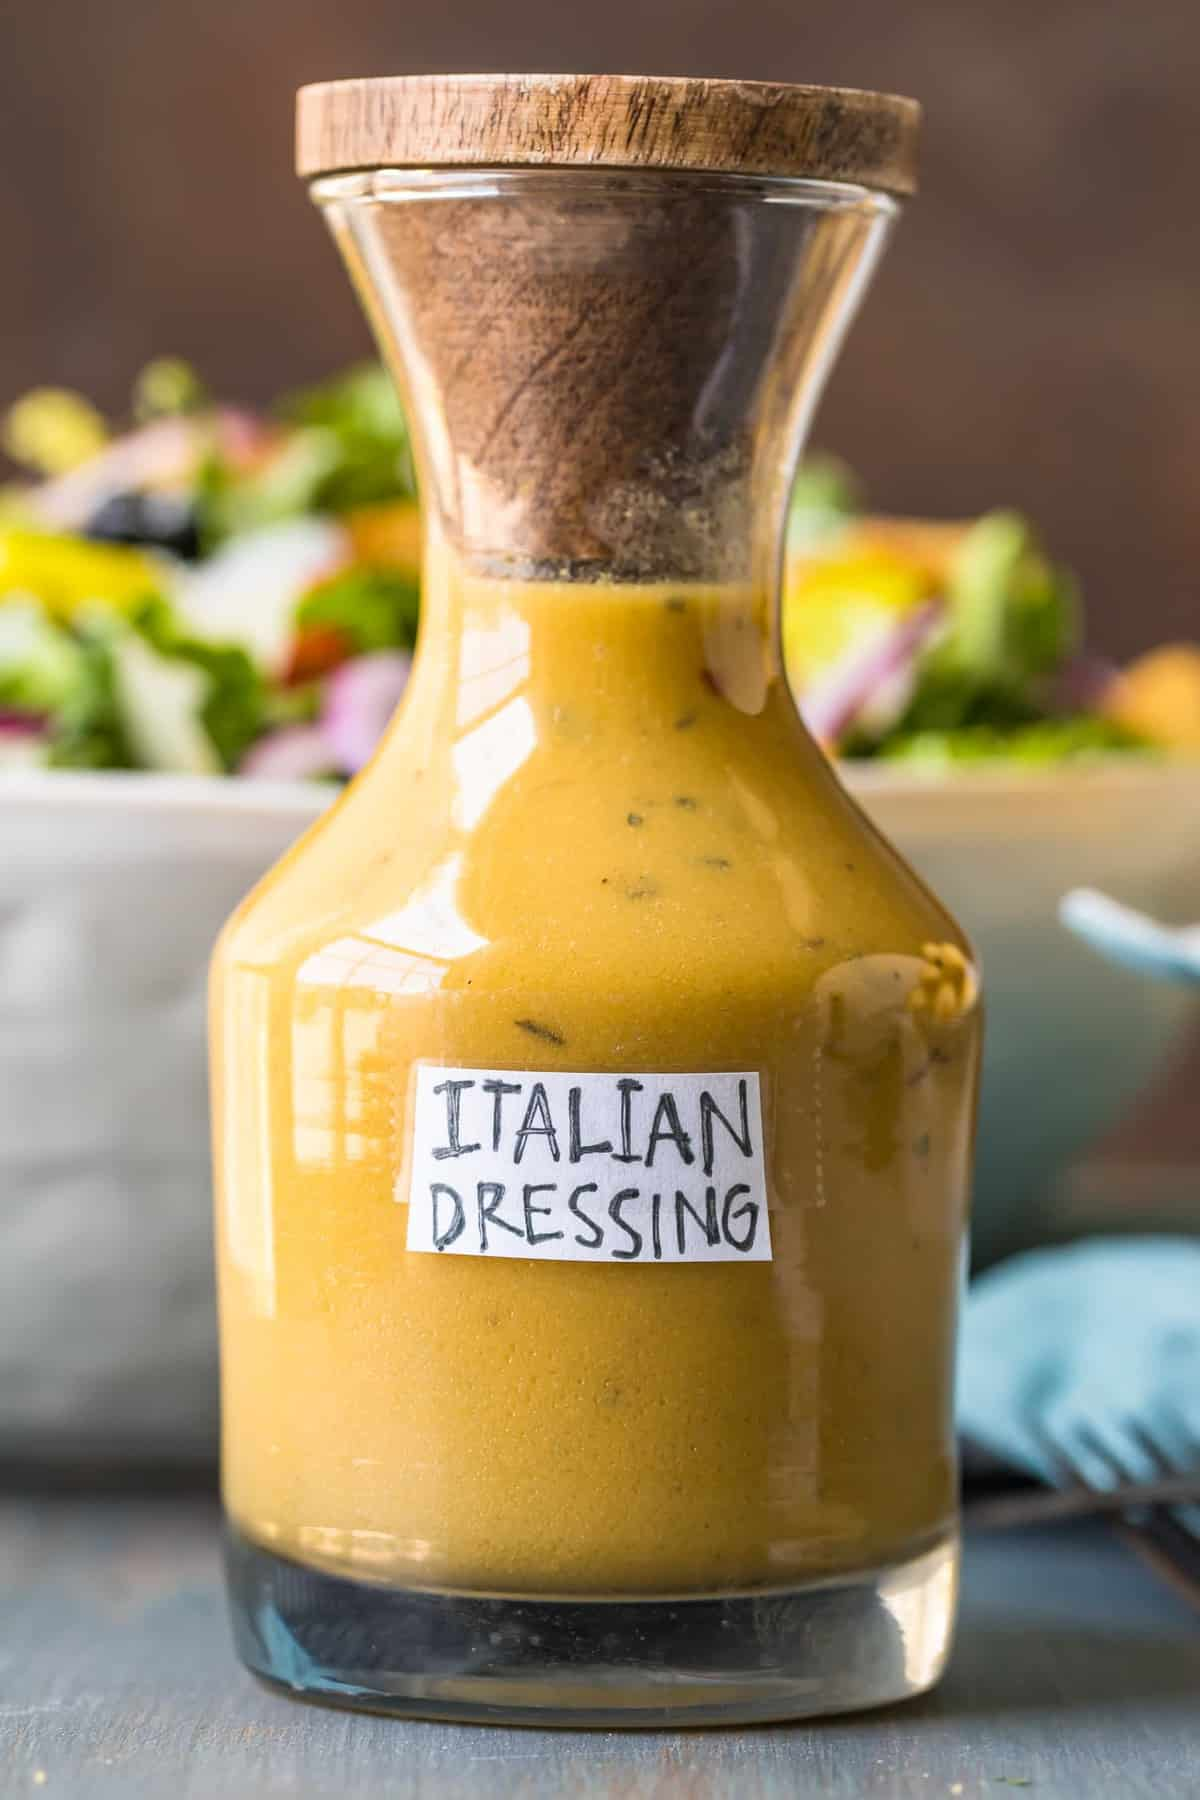 Italian dressing in a glass bottle